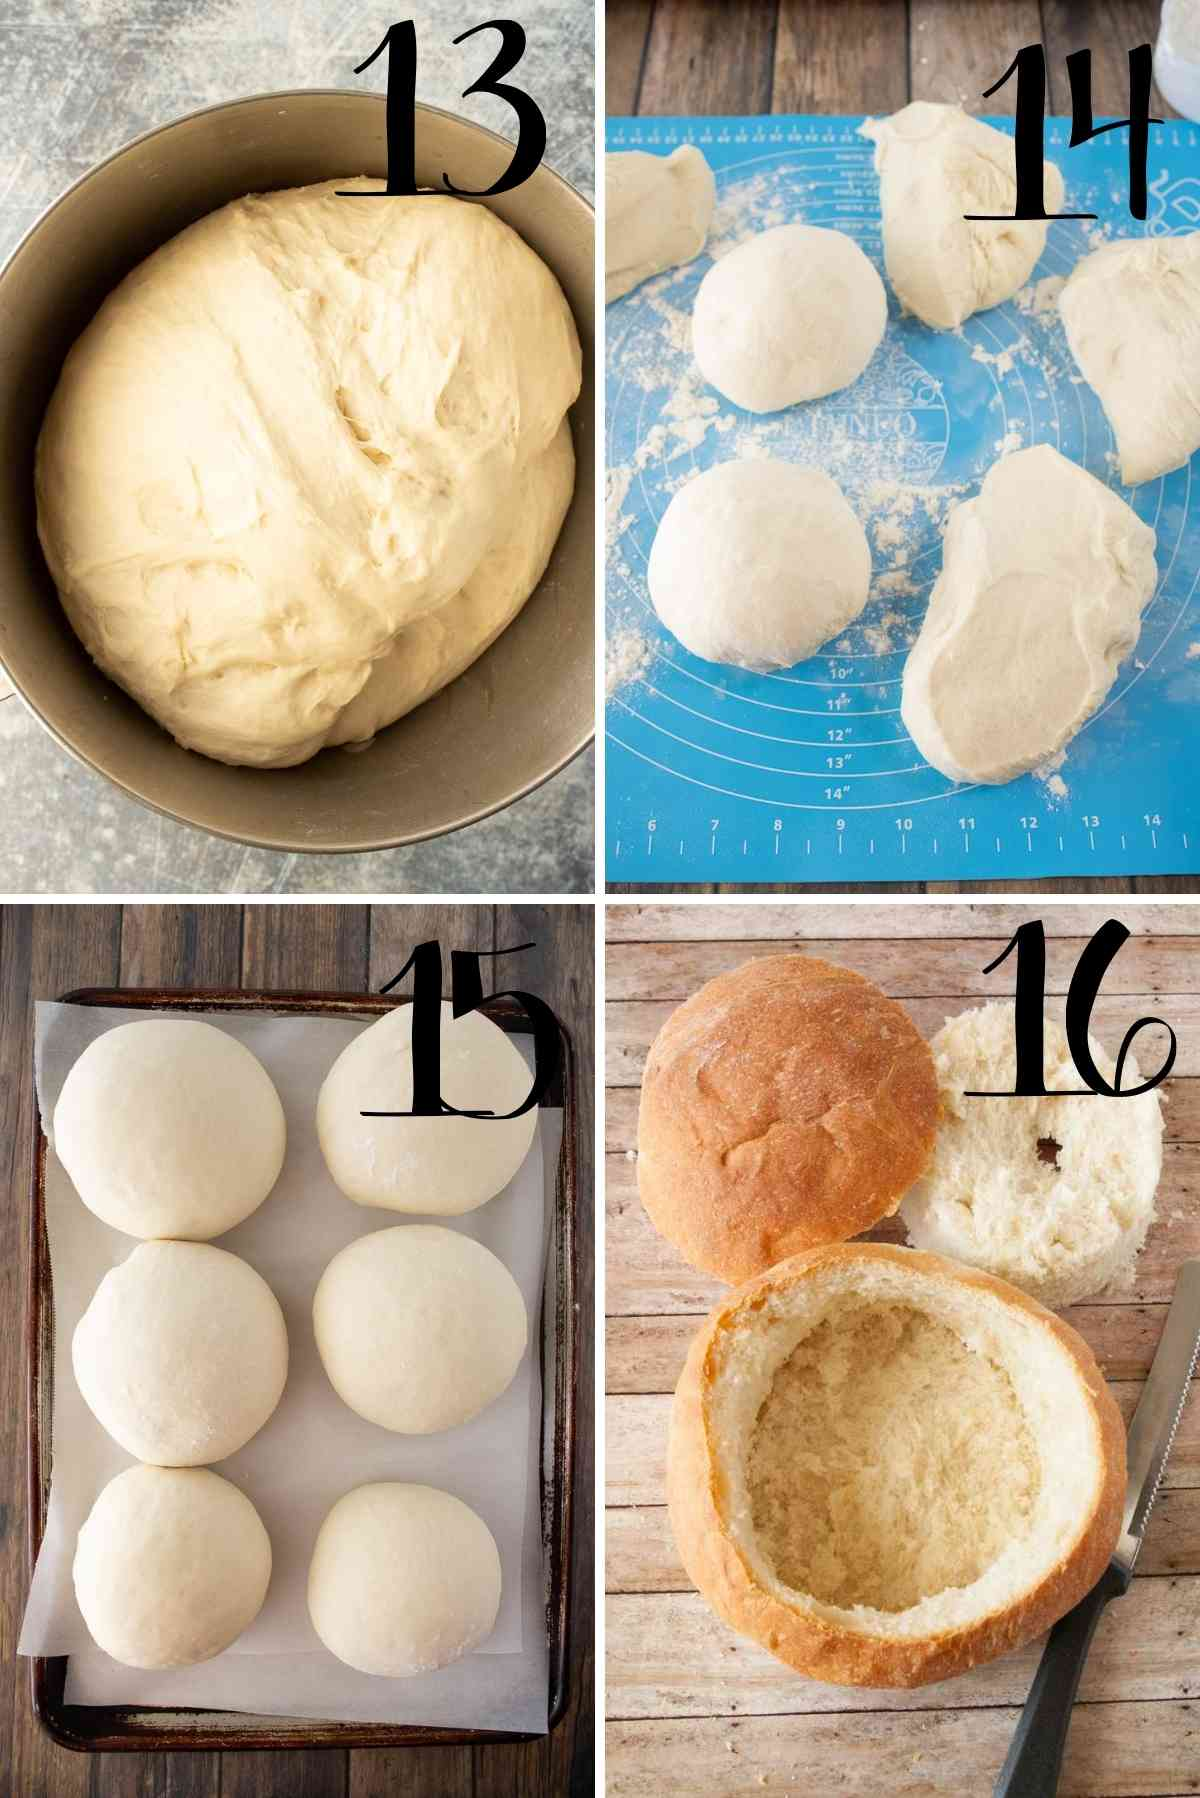 Dough dumped out, divided up, shaped into balls, baked and cut to hold soup.